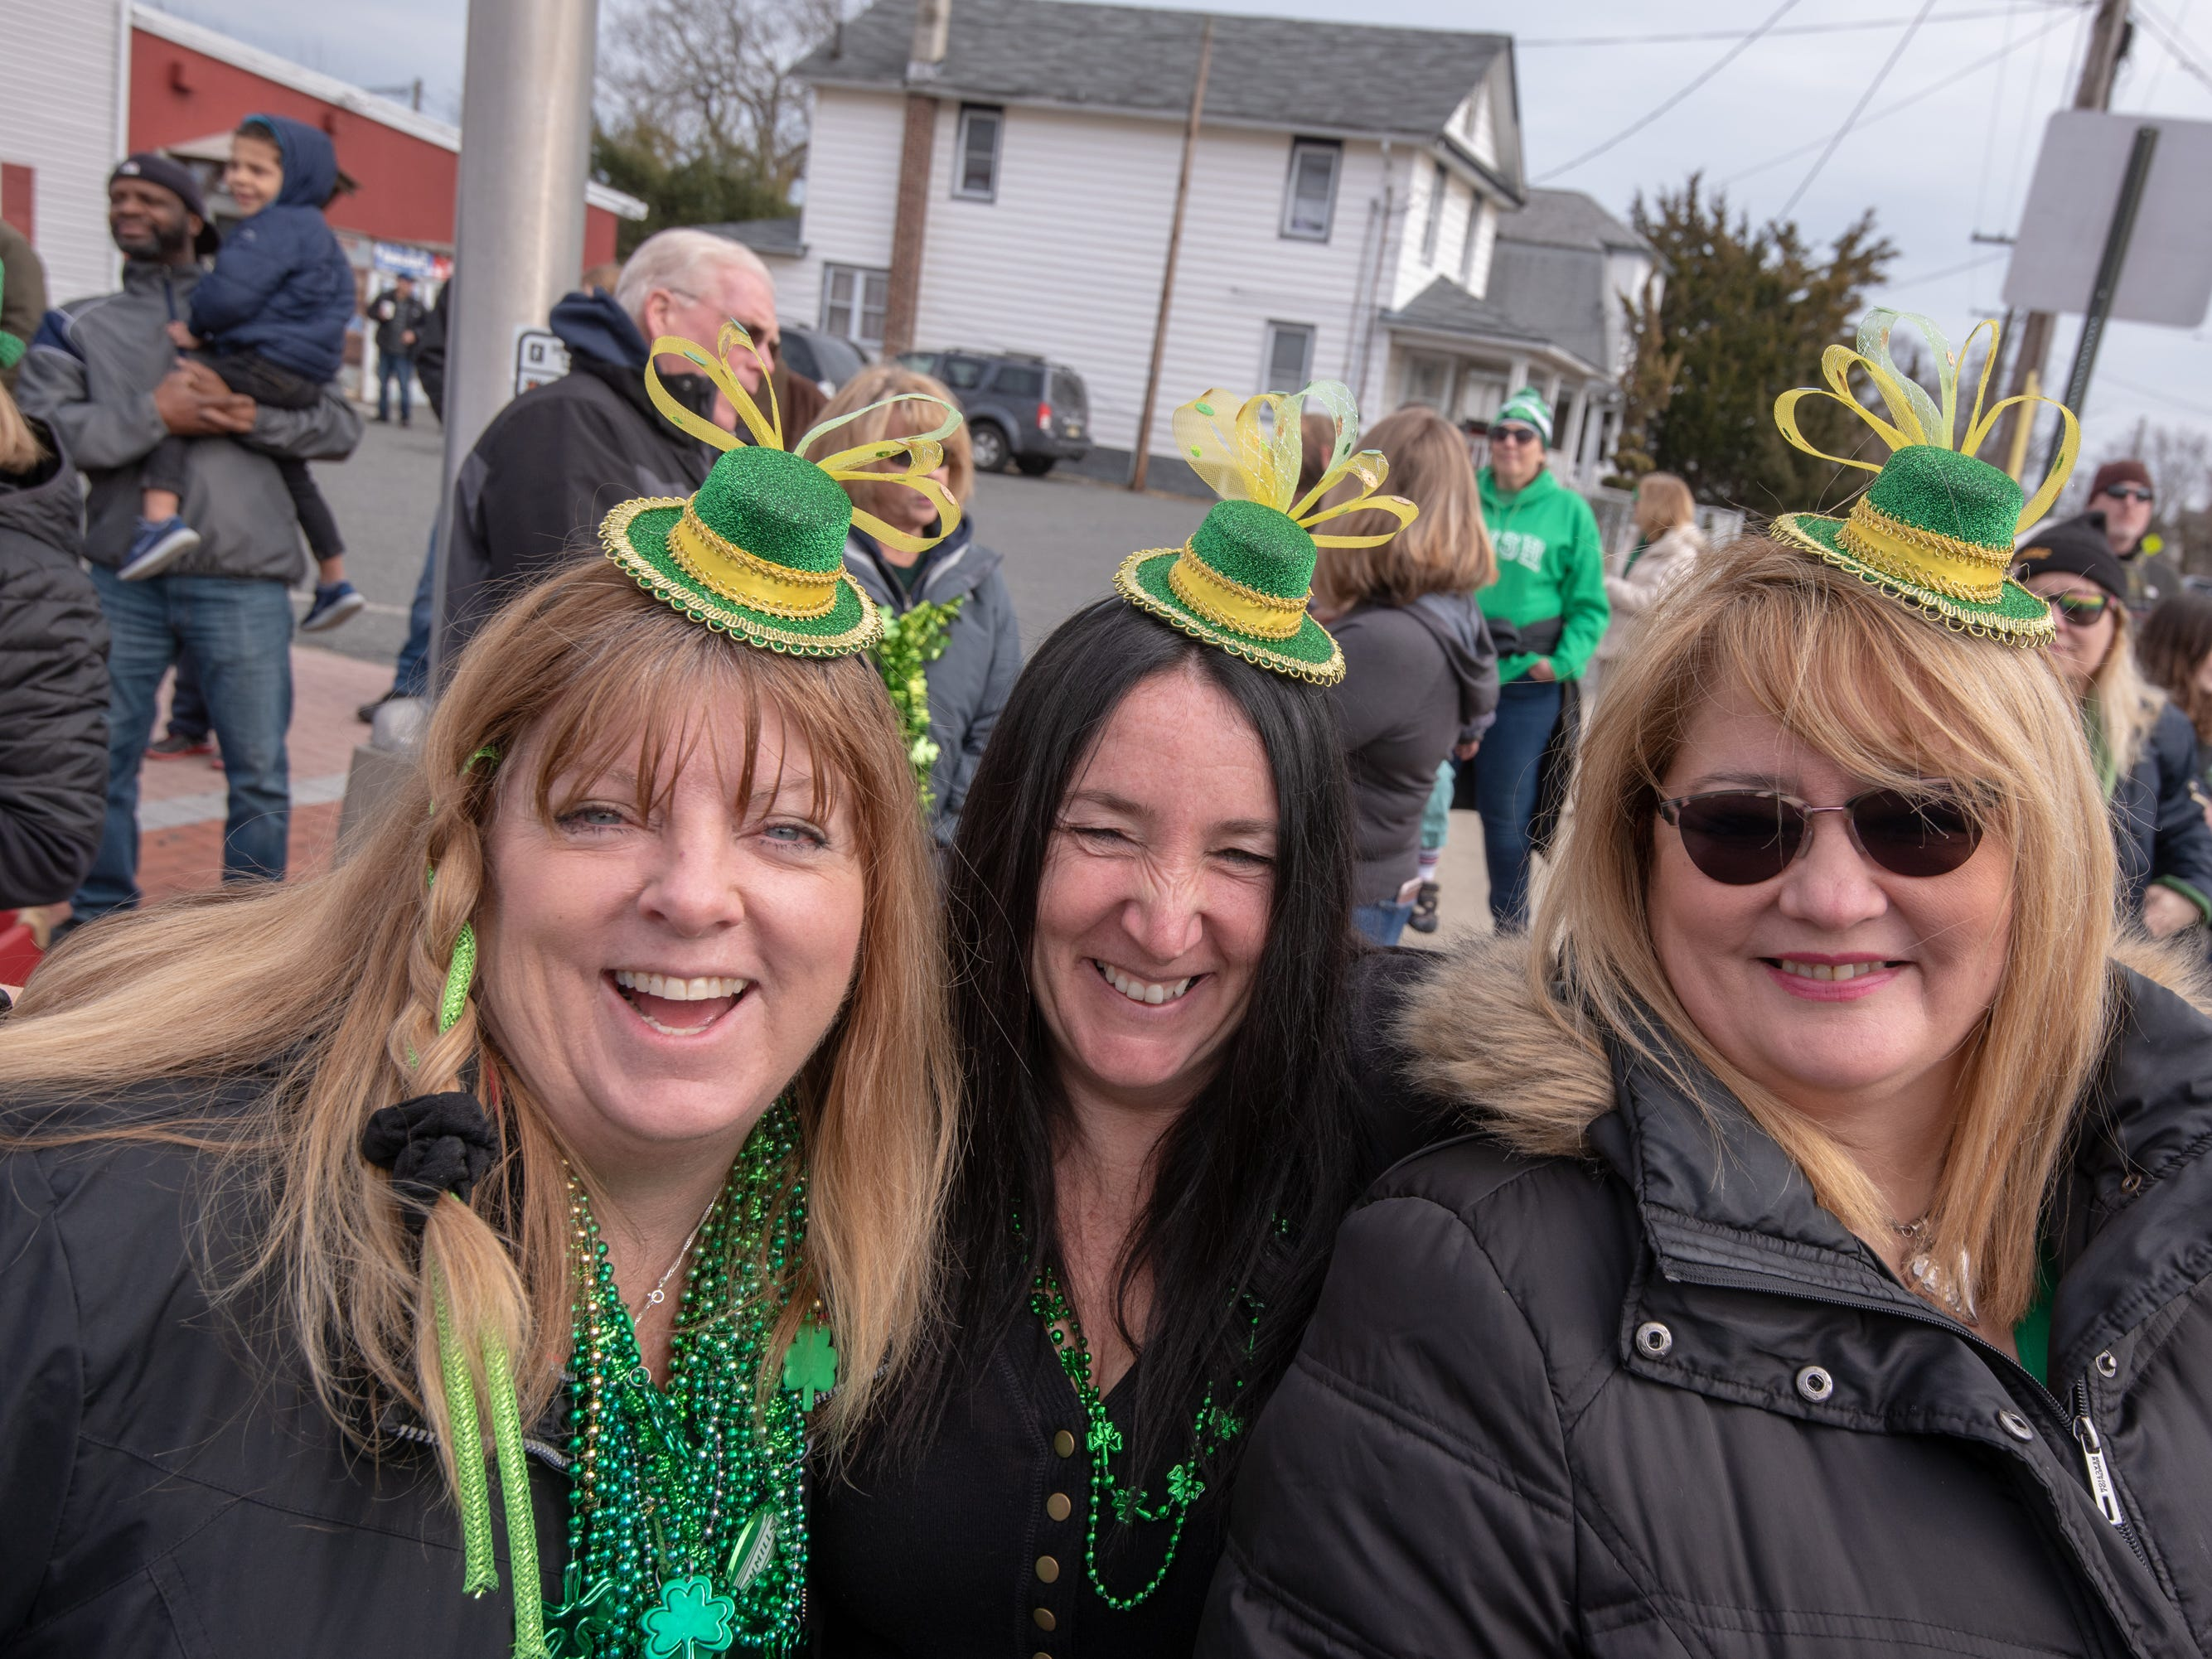 Sporting tiny, green hats are from left: Pattie Henry, Amy Daley and Ana Noon, all of Wall Twp. The 46th annual Belmar/Lake Como St. Patrick's Day Parade was held in Belmar on March 3, 2019.